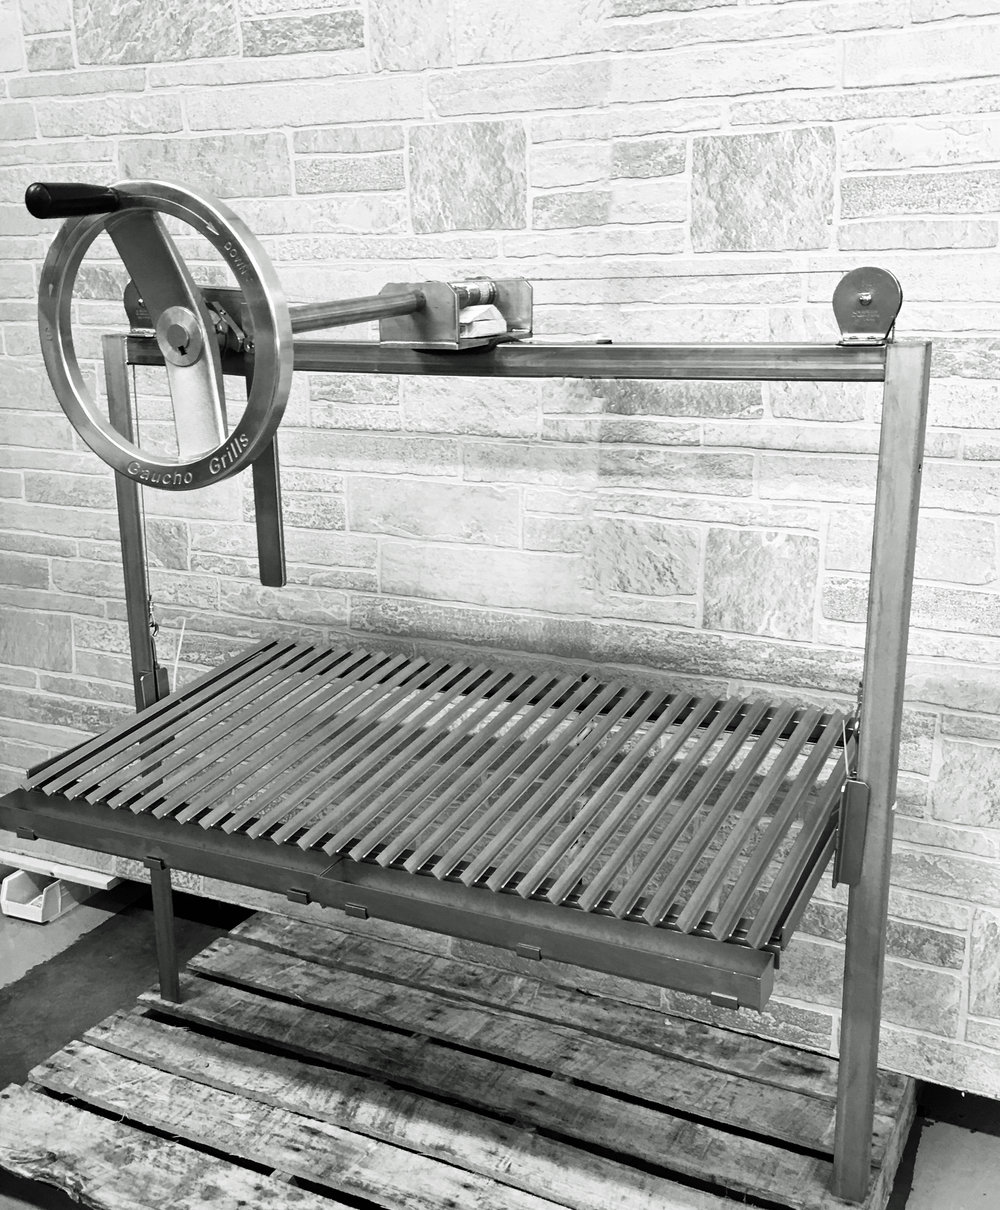 Center Mounted Crank Wheel with Wall Mounted Frame